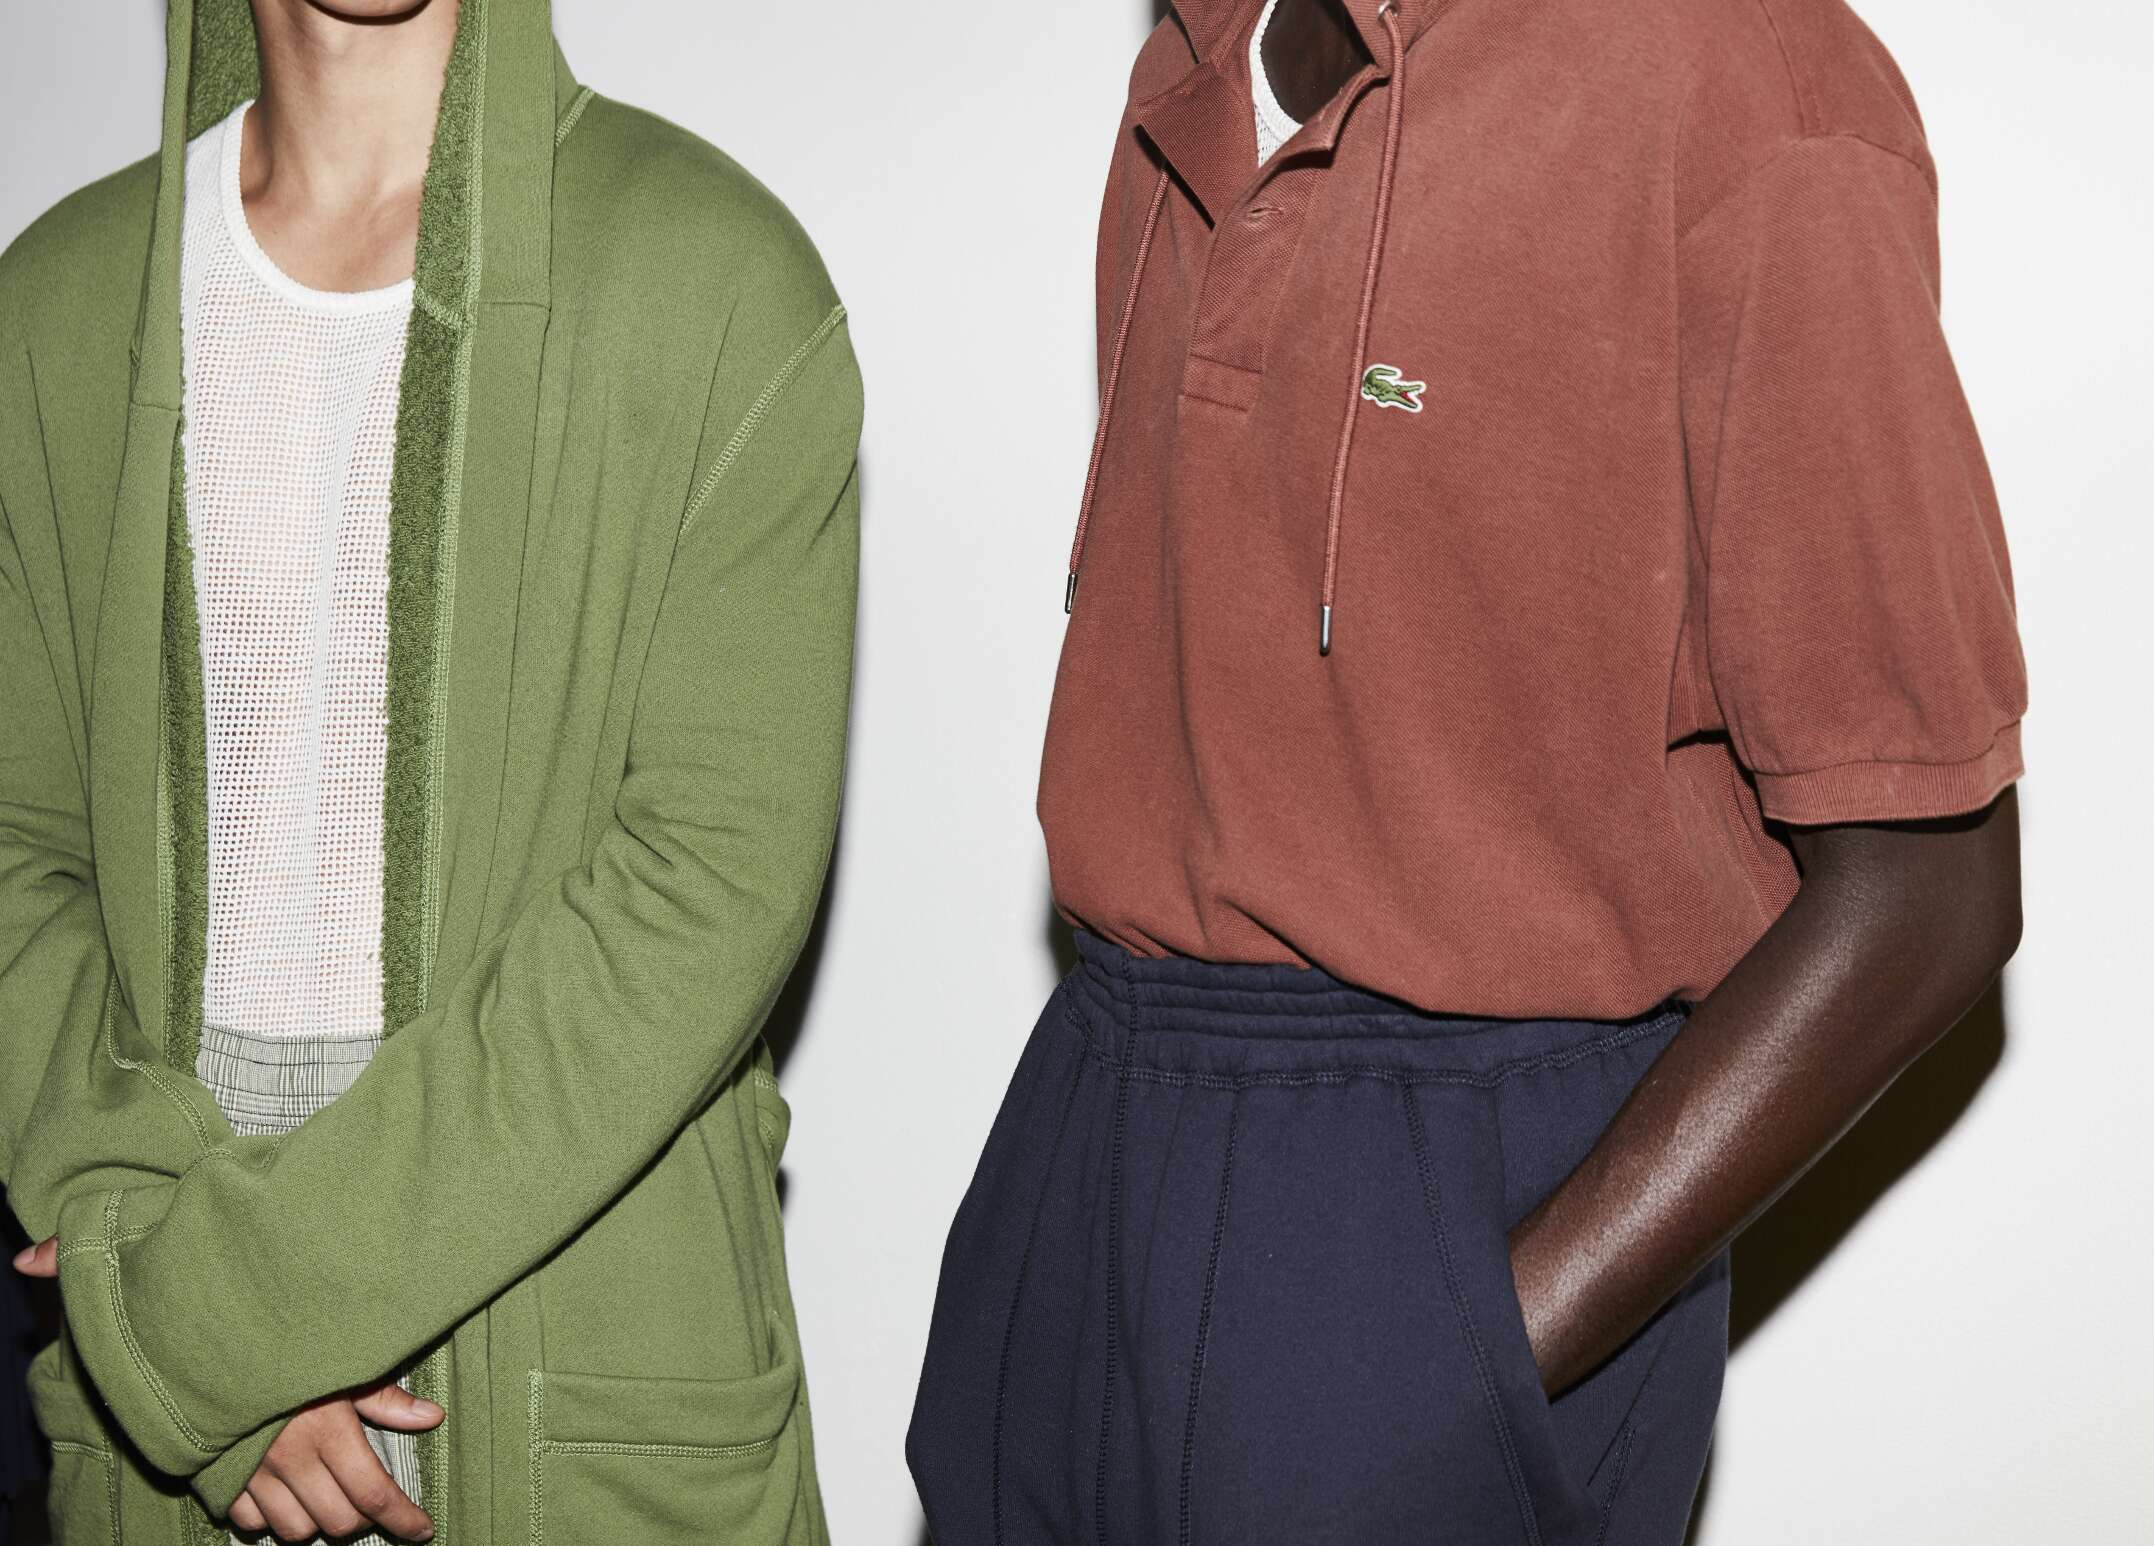 2017 Models Backstage Lacoste